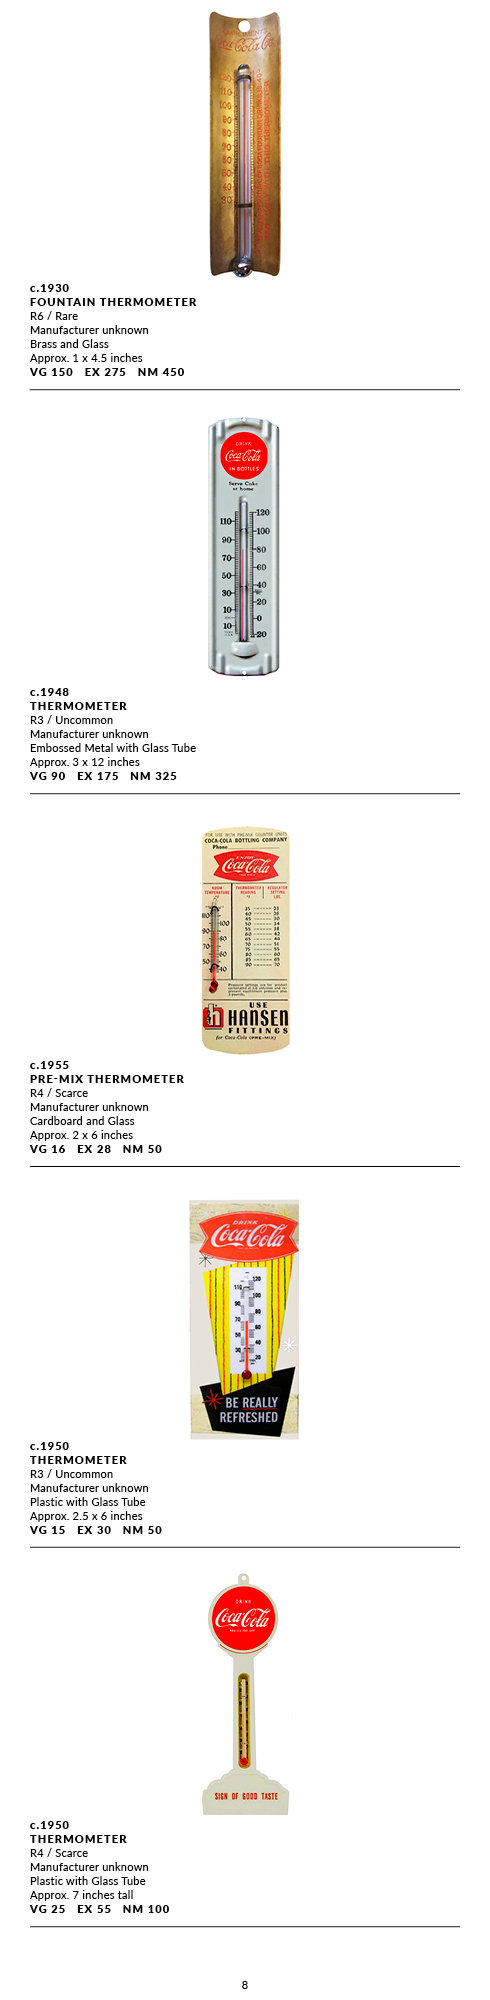 Thermometers copy8.jpg